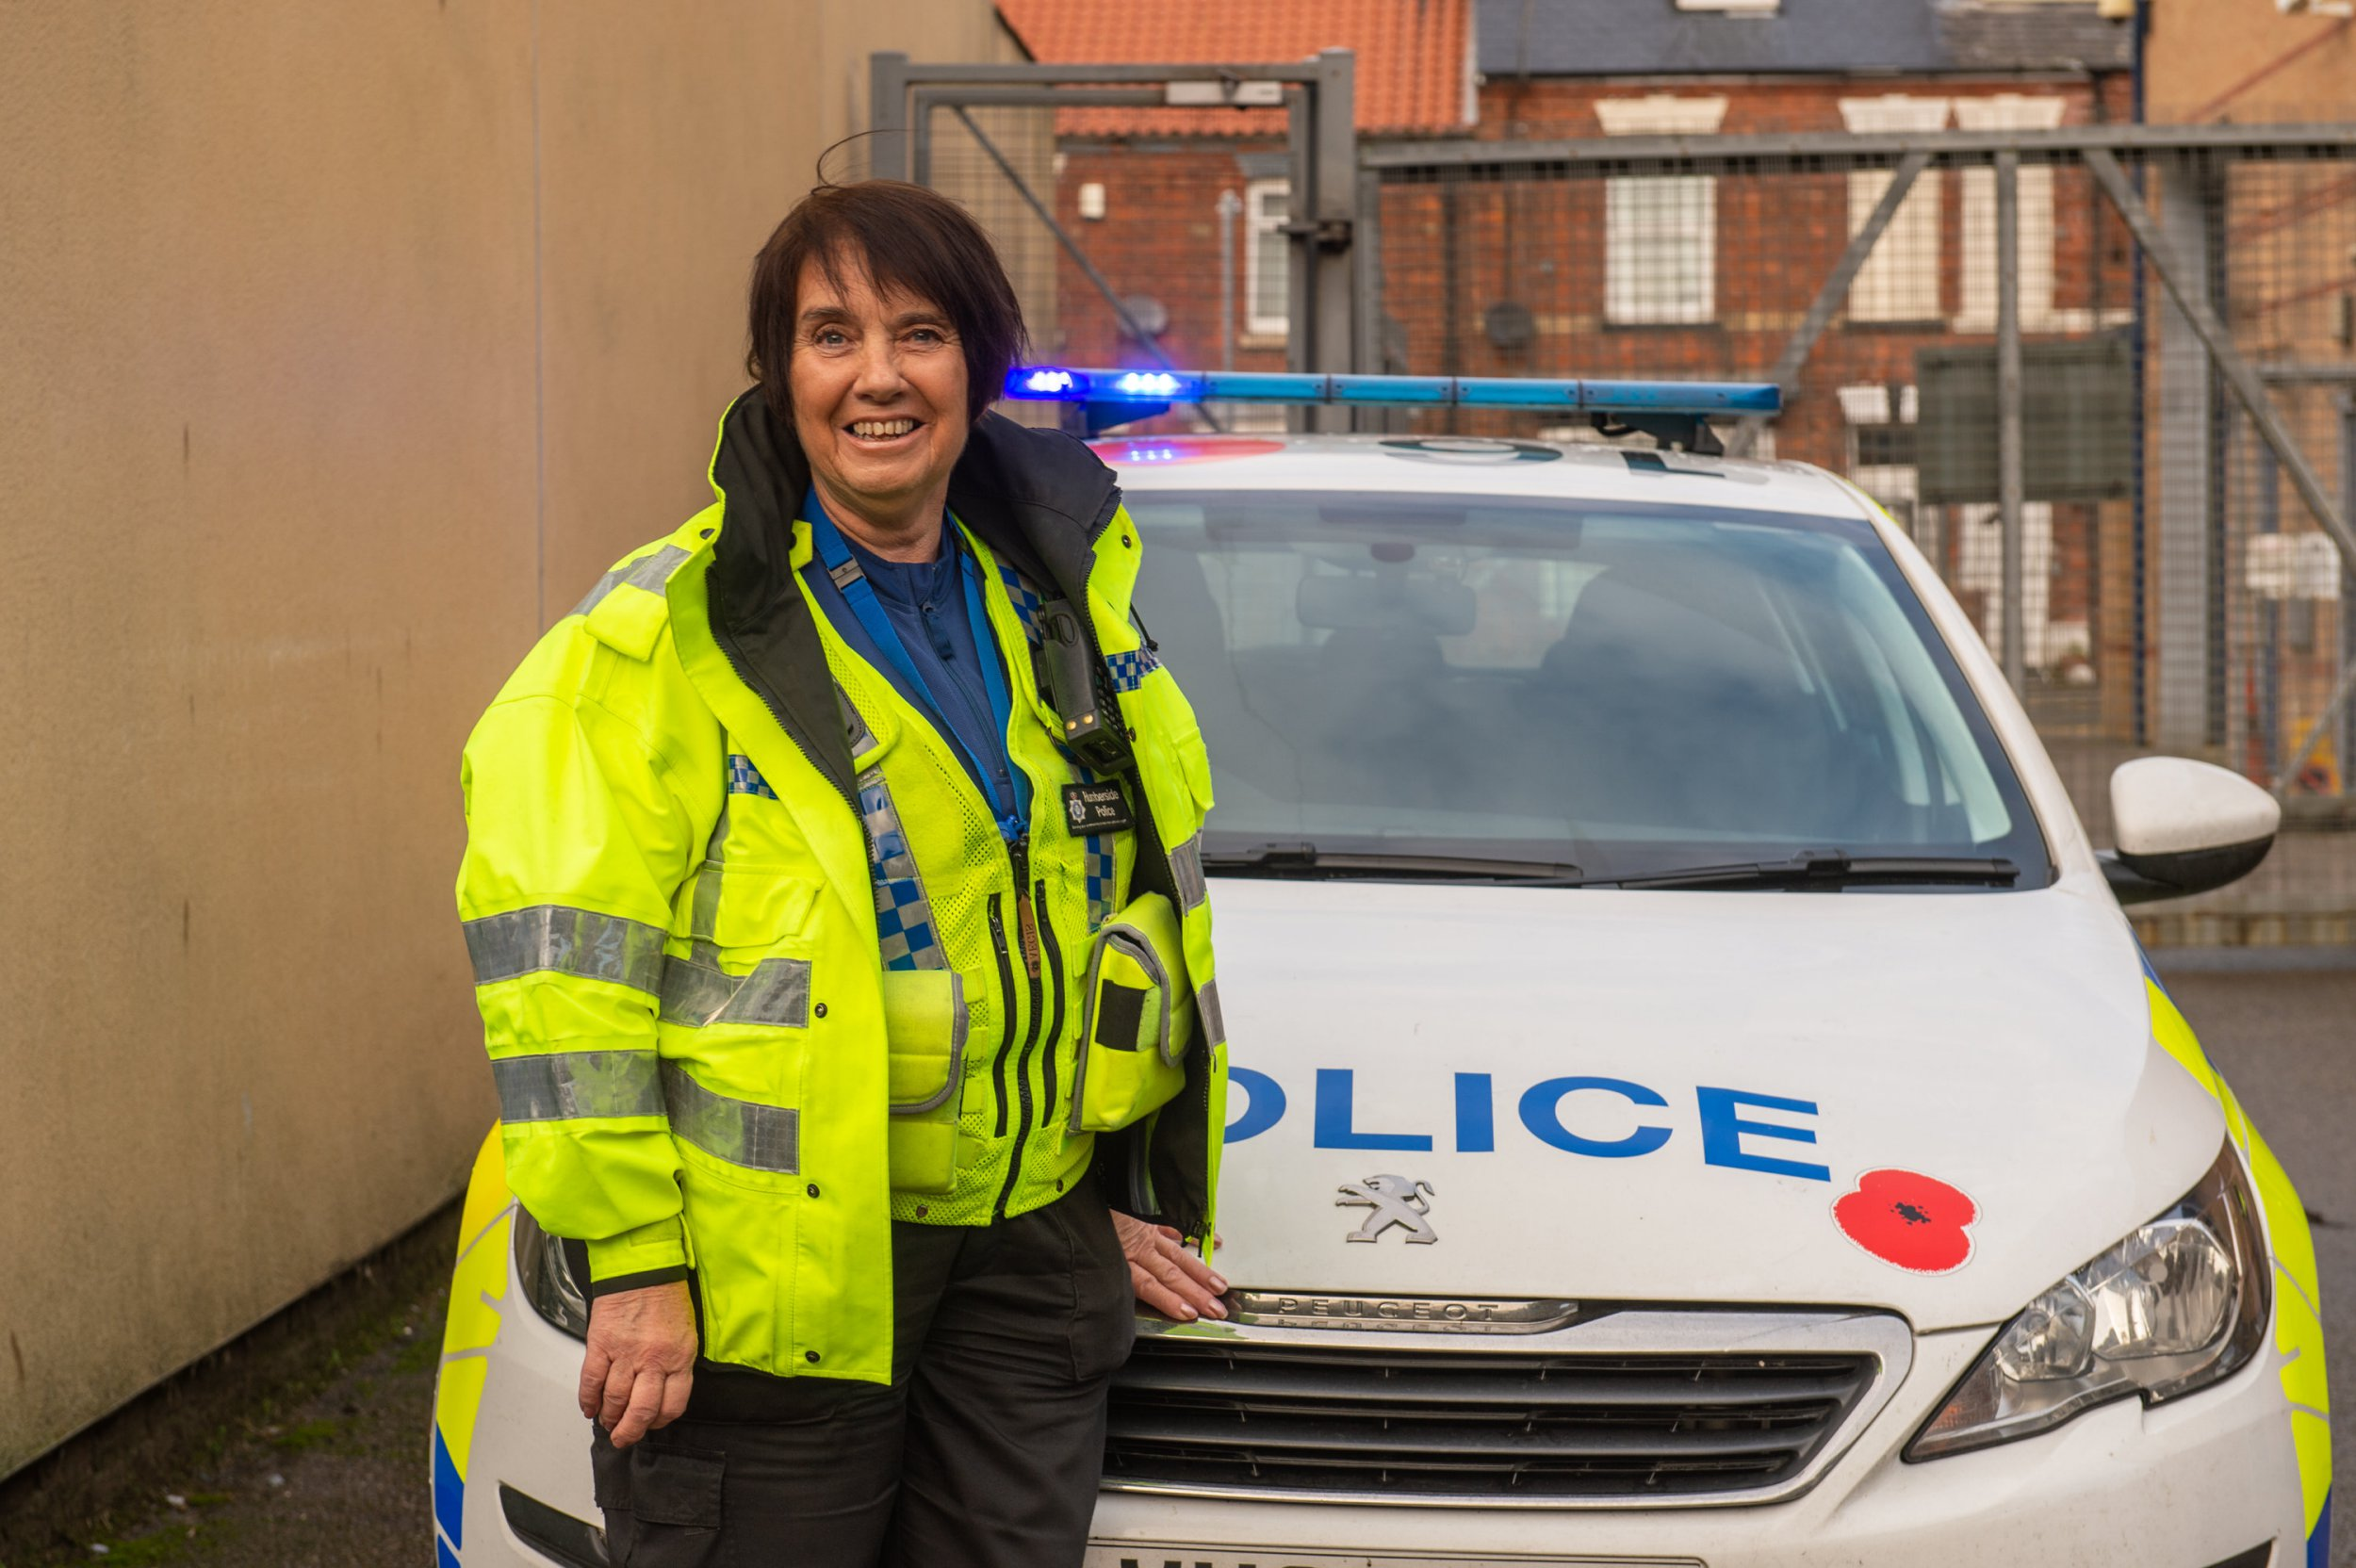 Gran, 71, is UK's oldest PCSO and has no plans to retire